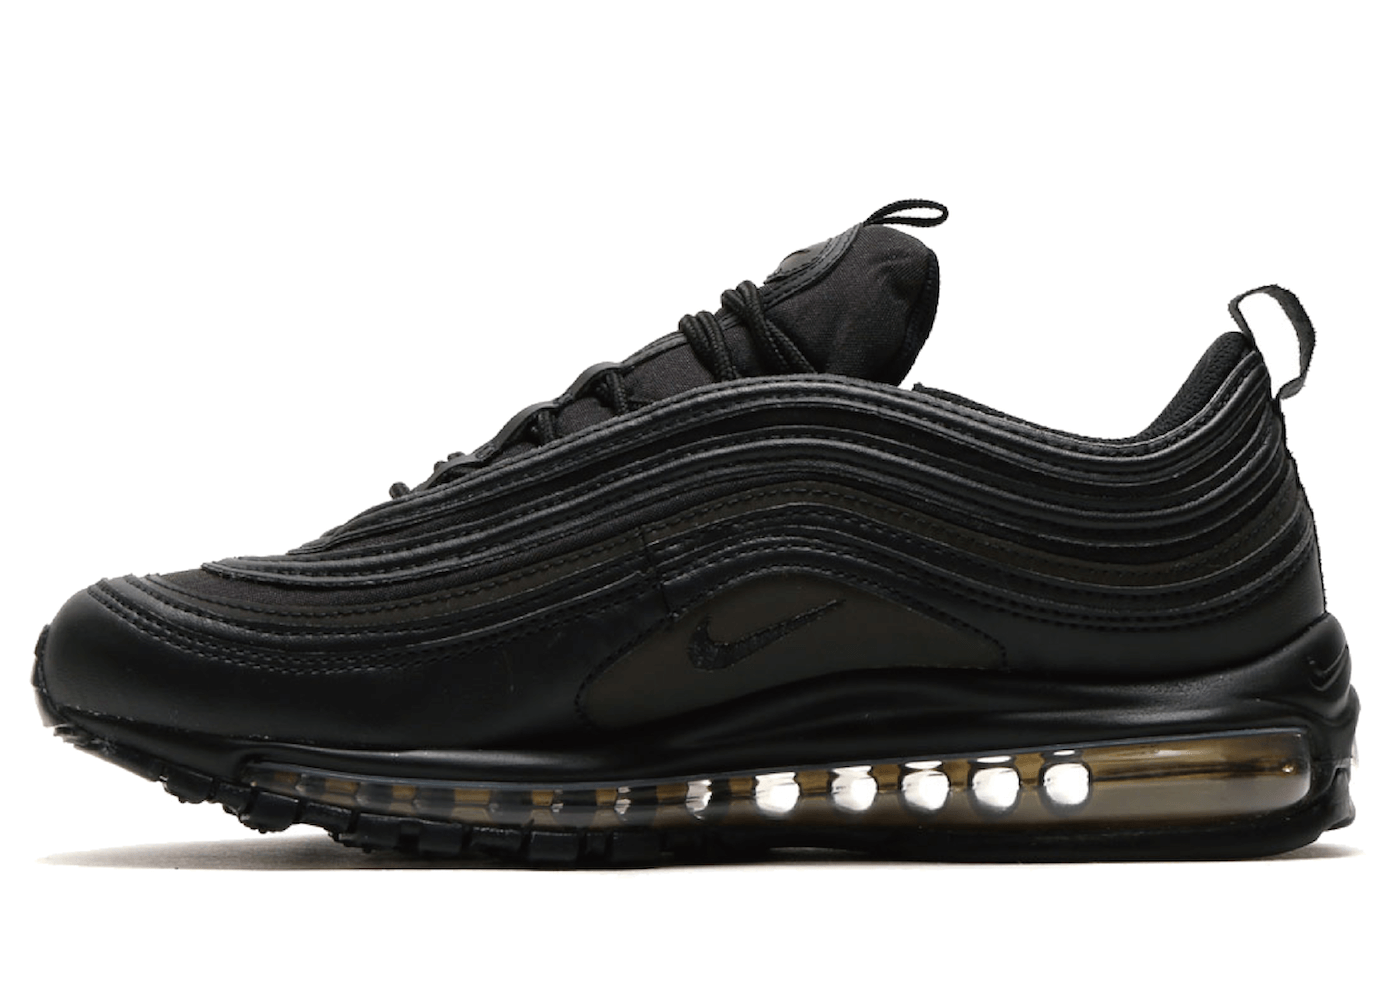 Air Max 97 Black Reflective Goldの写真